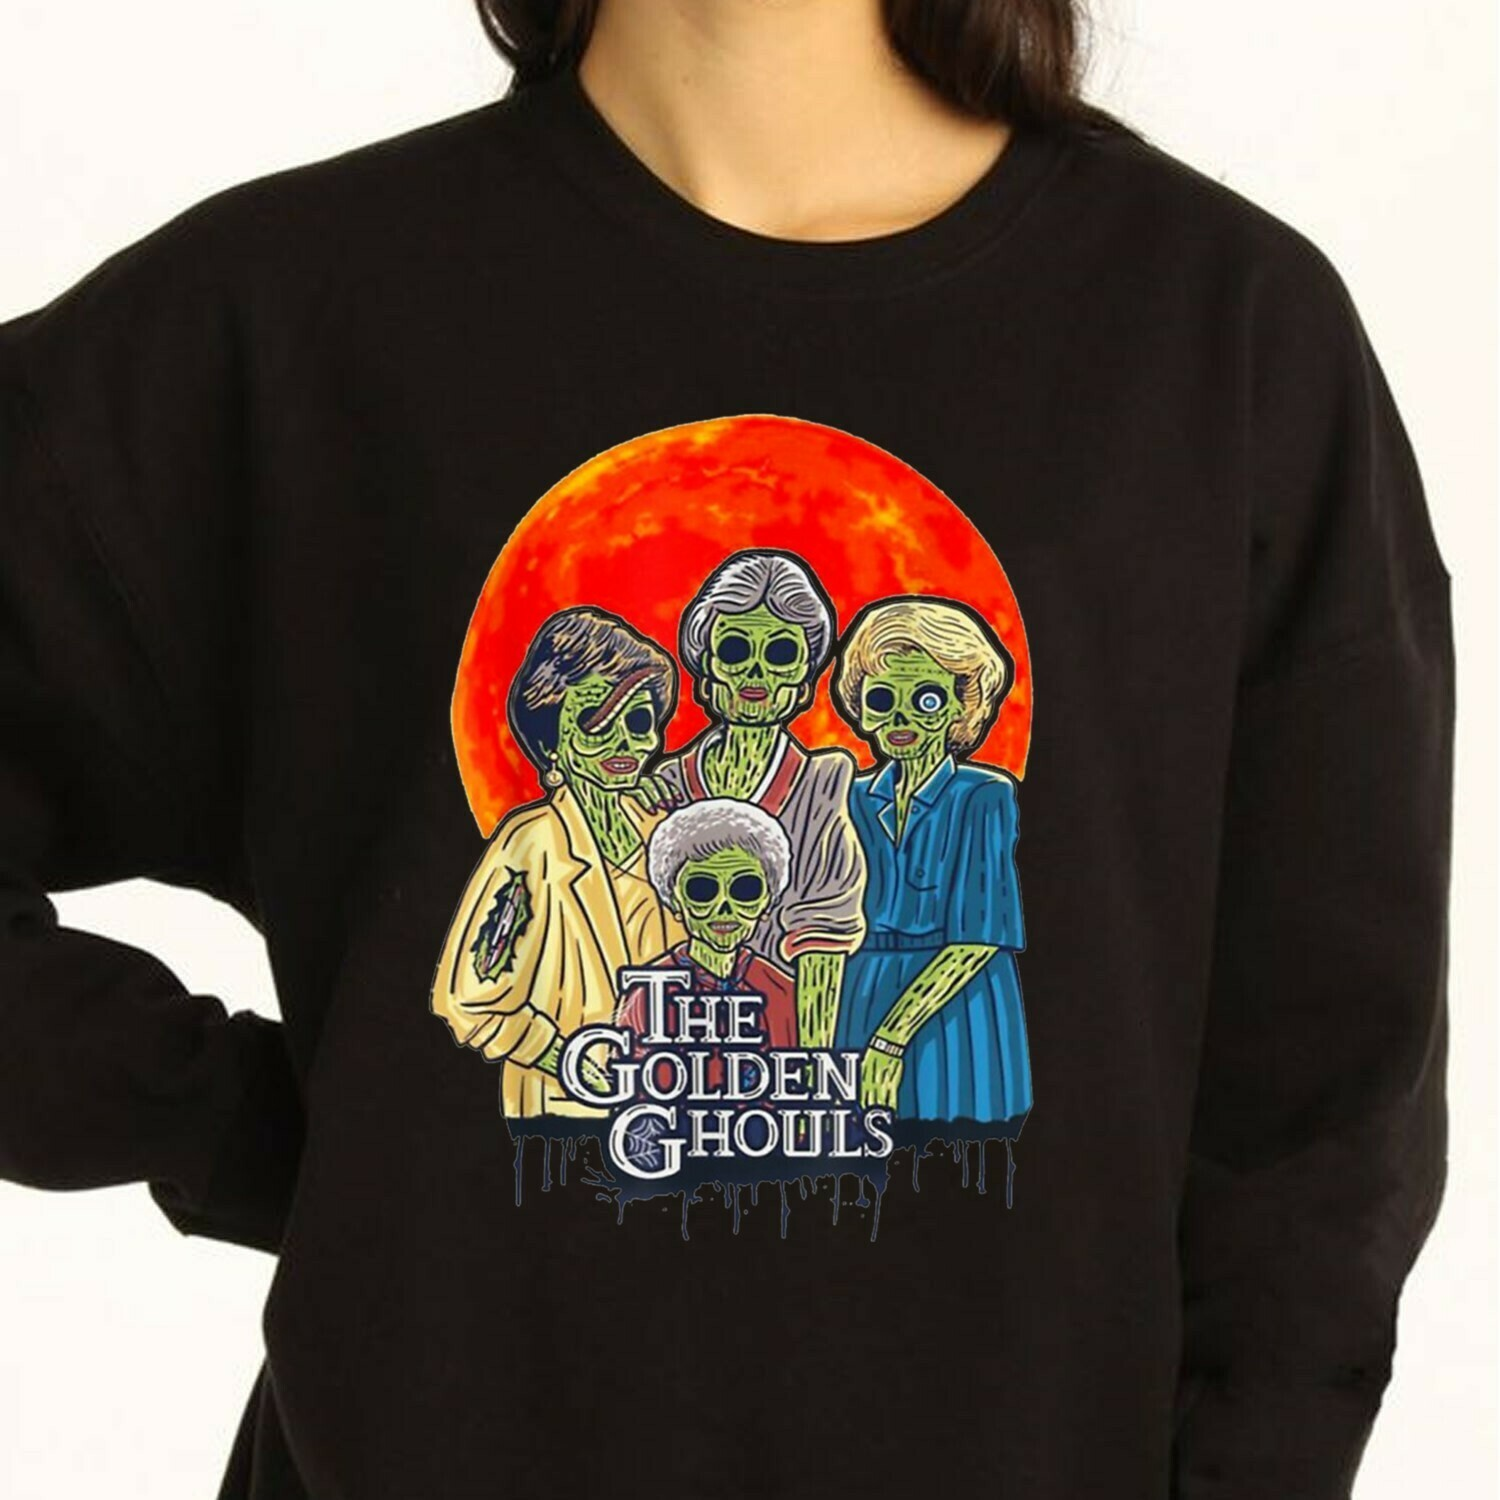 The Golden Ghouls Horror Hocus Pocus Witches Sanderson Sisters Mandala Disney Villains Halloween Colored T-Shirt Long Sleeve Sweatshirt Hoodie Jolly Family Gifts